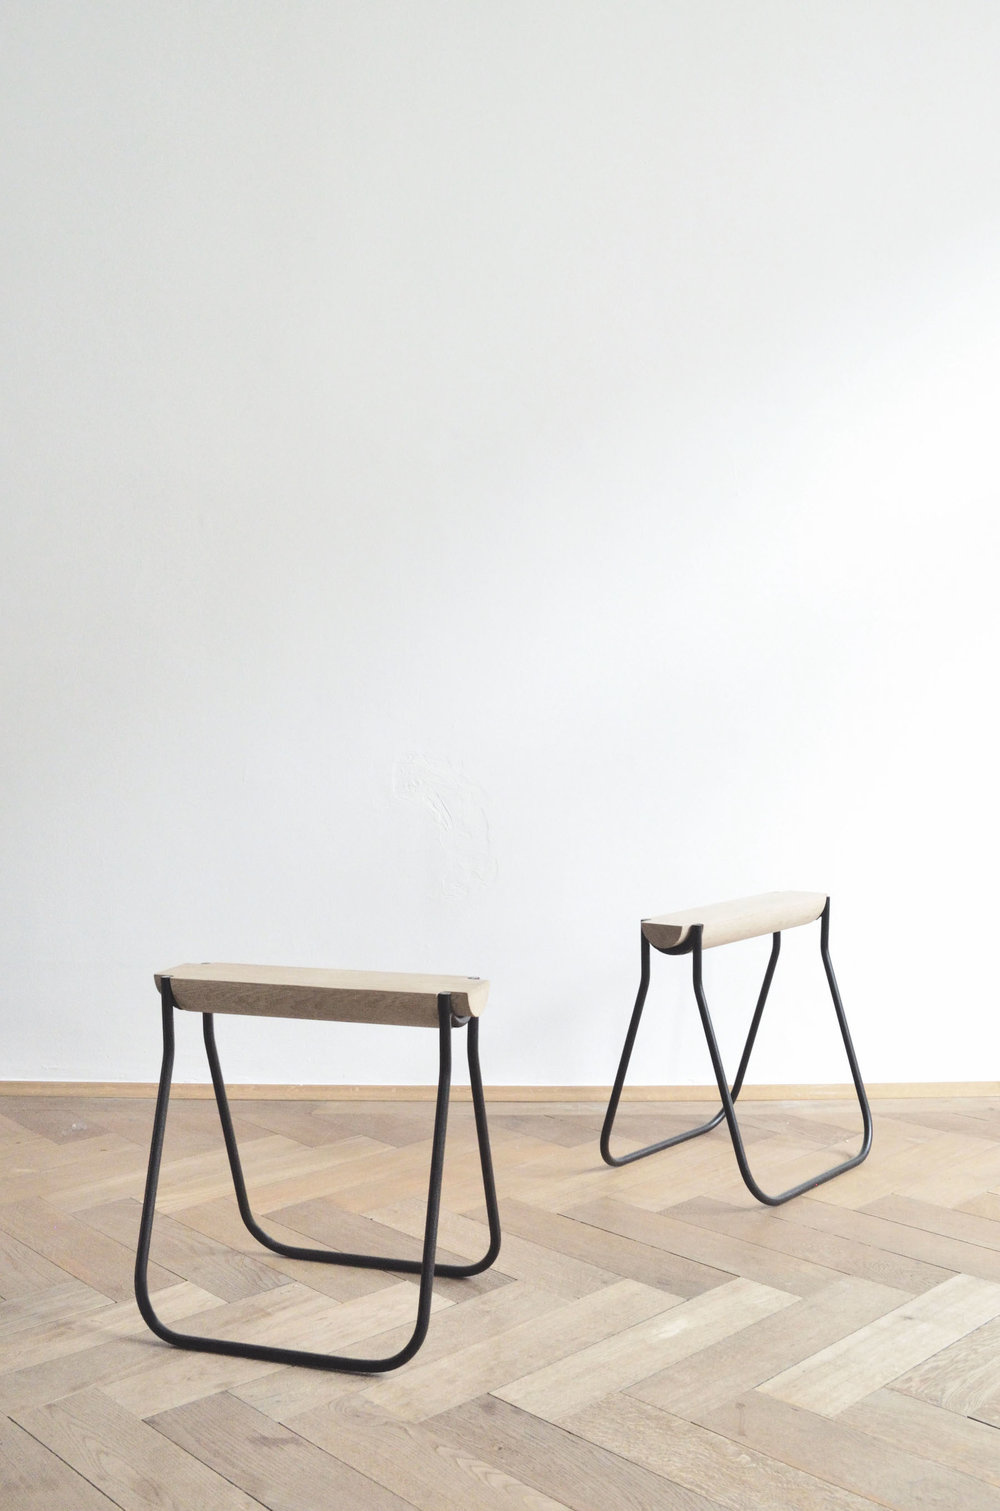 6040 Stool designed by Studio Stephan Schmid